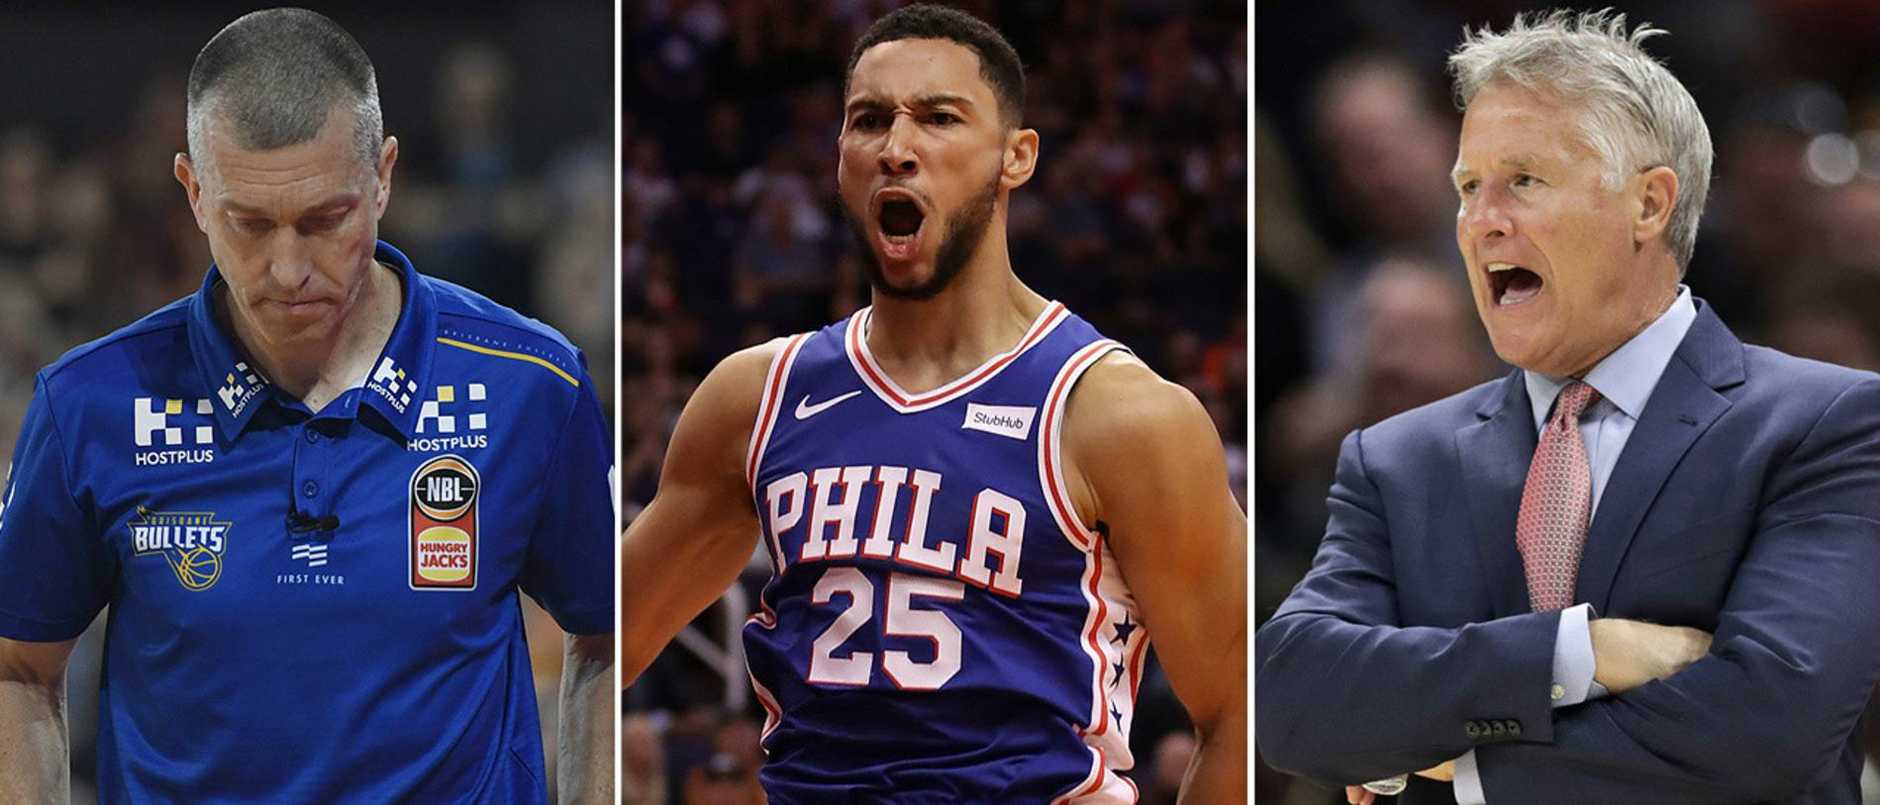 Ben Simmons, Andrej Lemanis and Brett Brown.